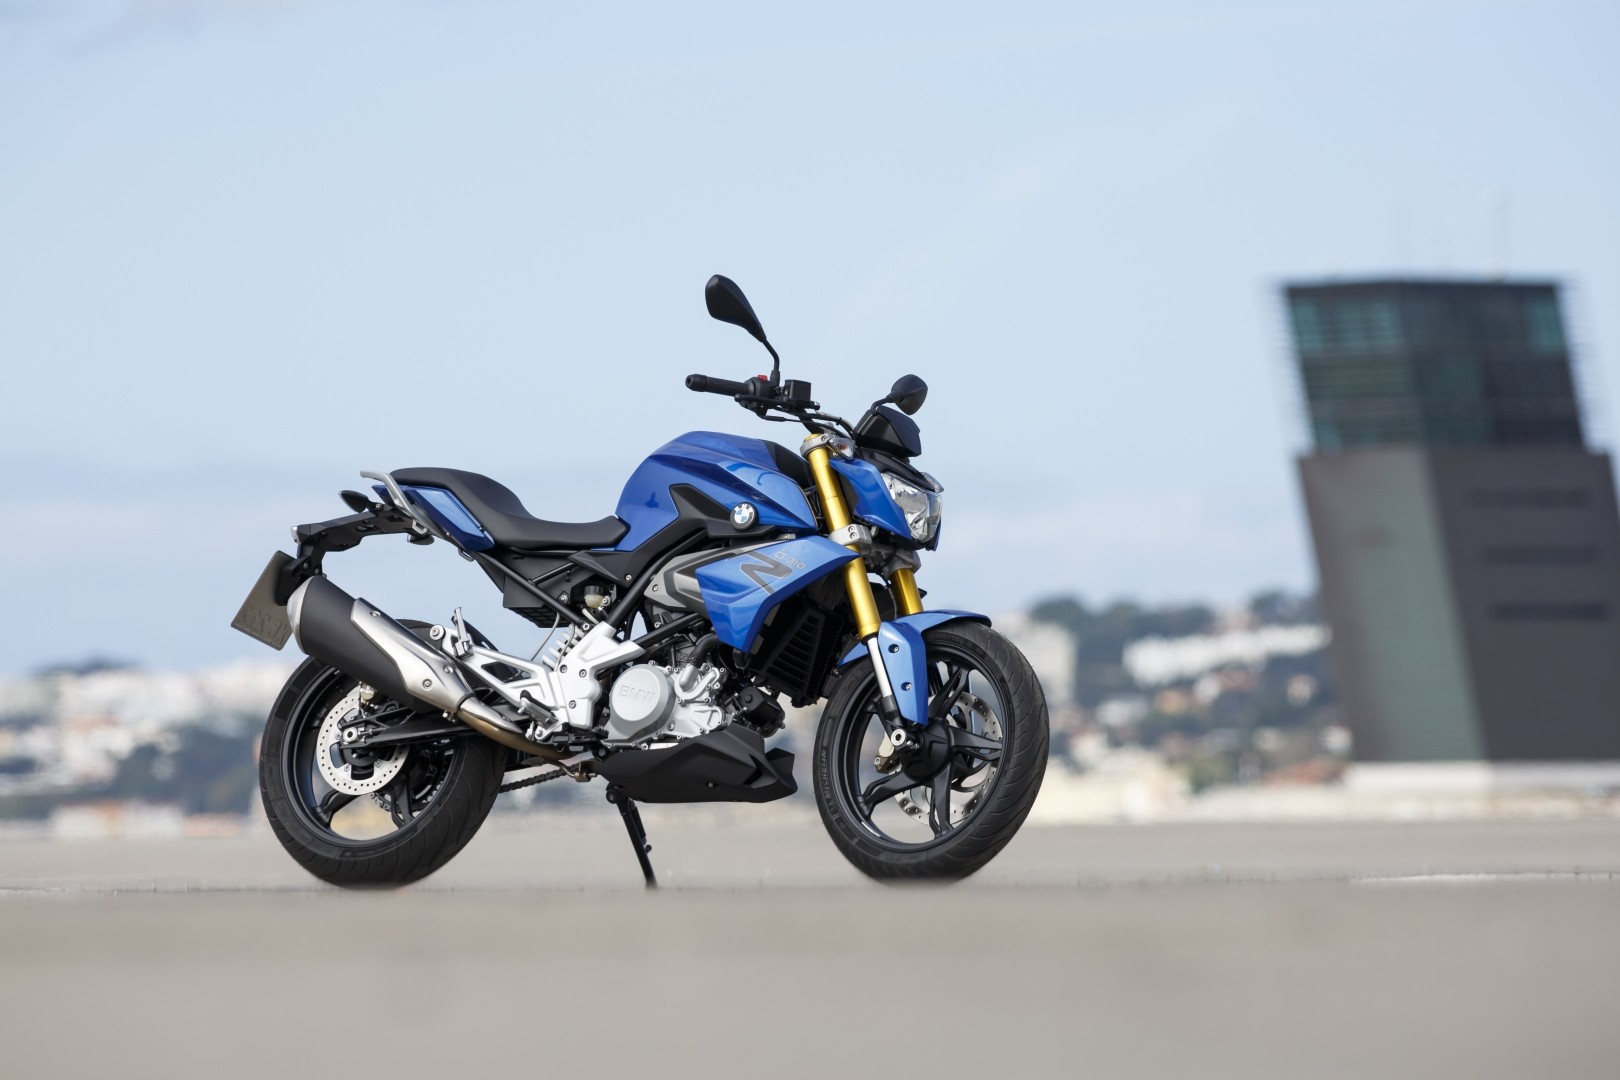 Bmw g310r breaks cover looks perfect autoevolution